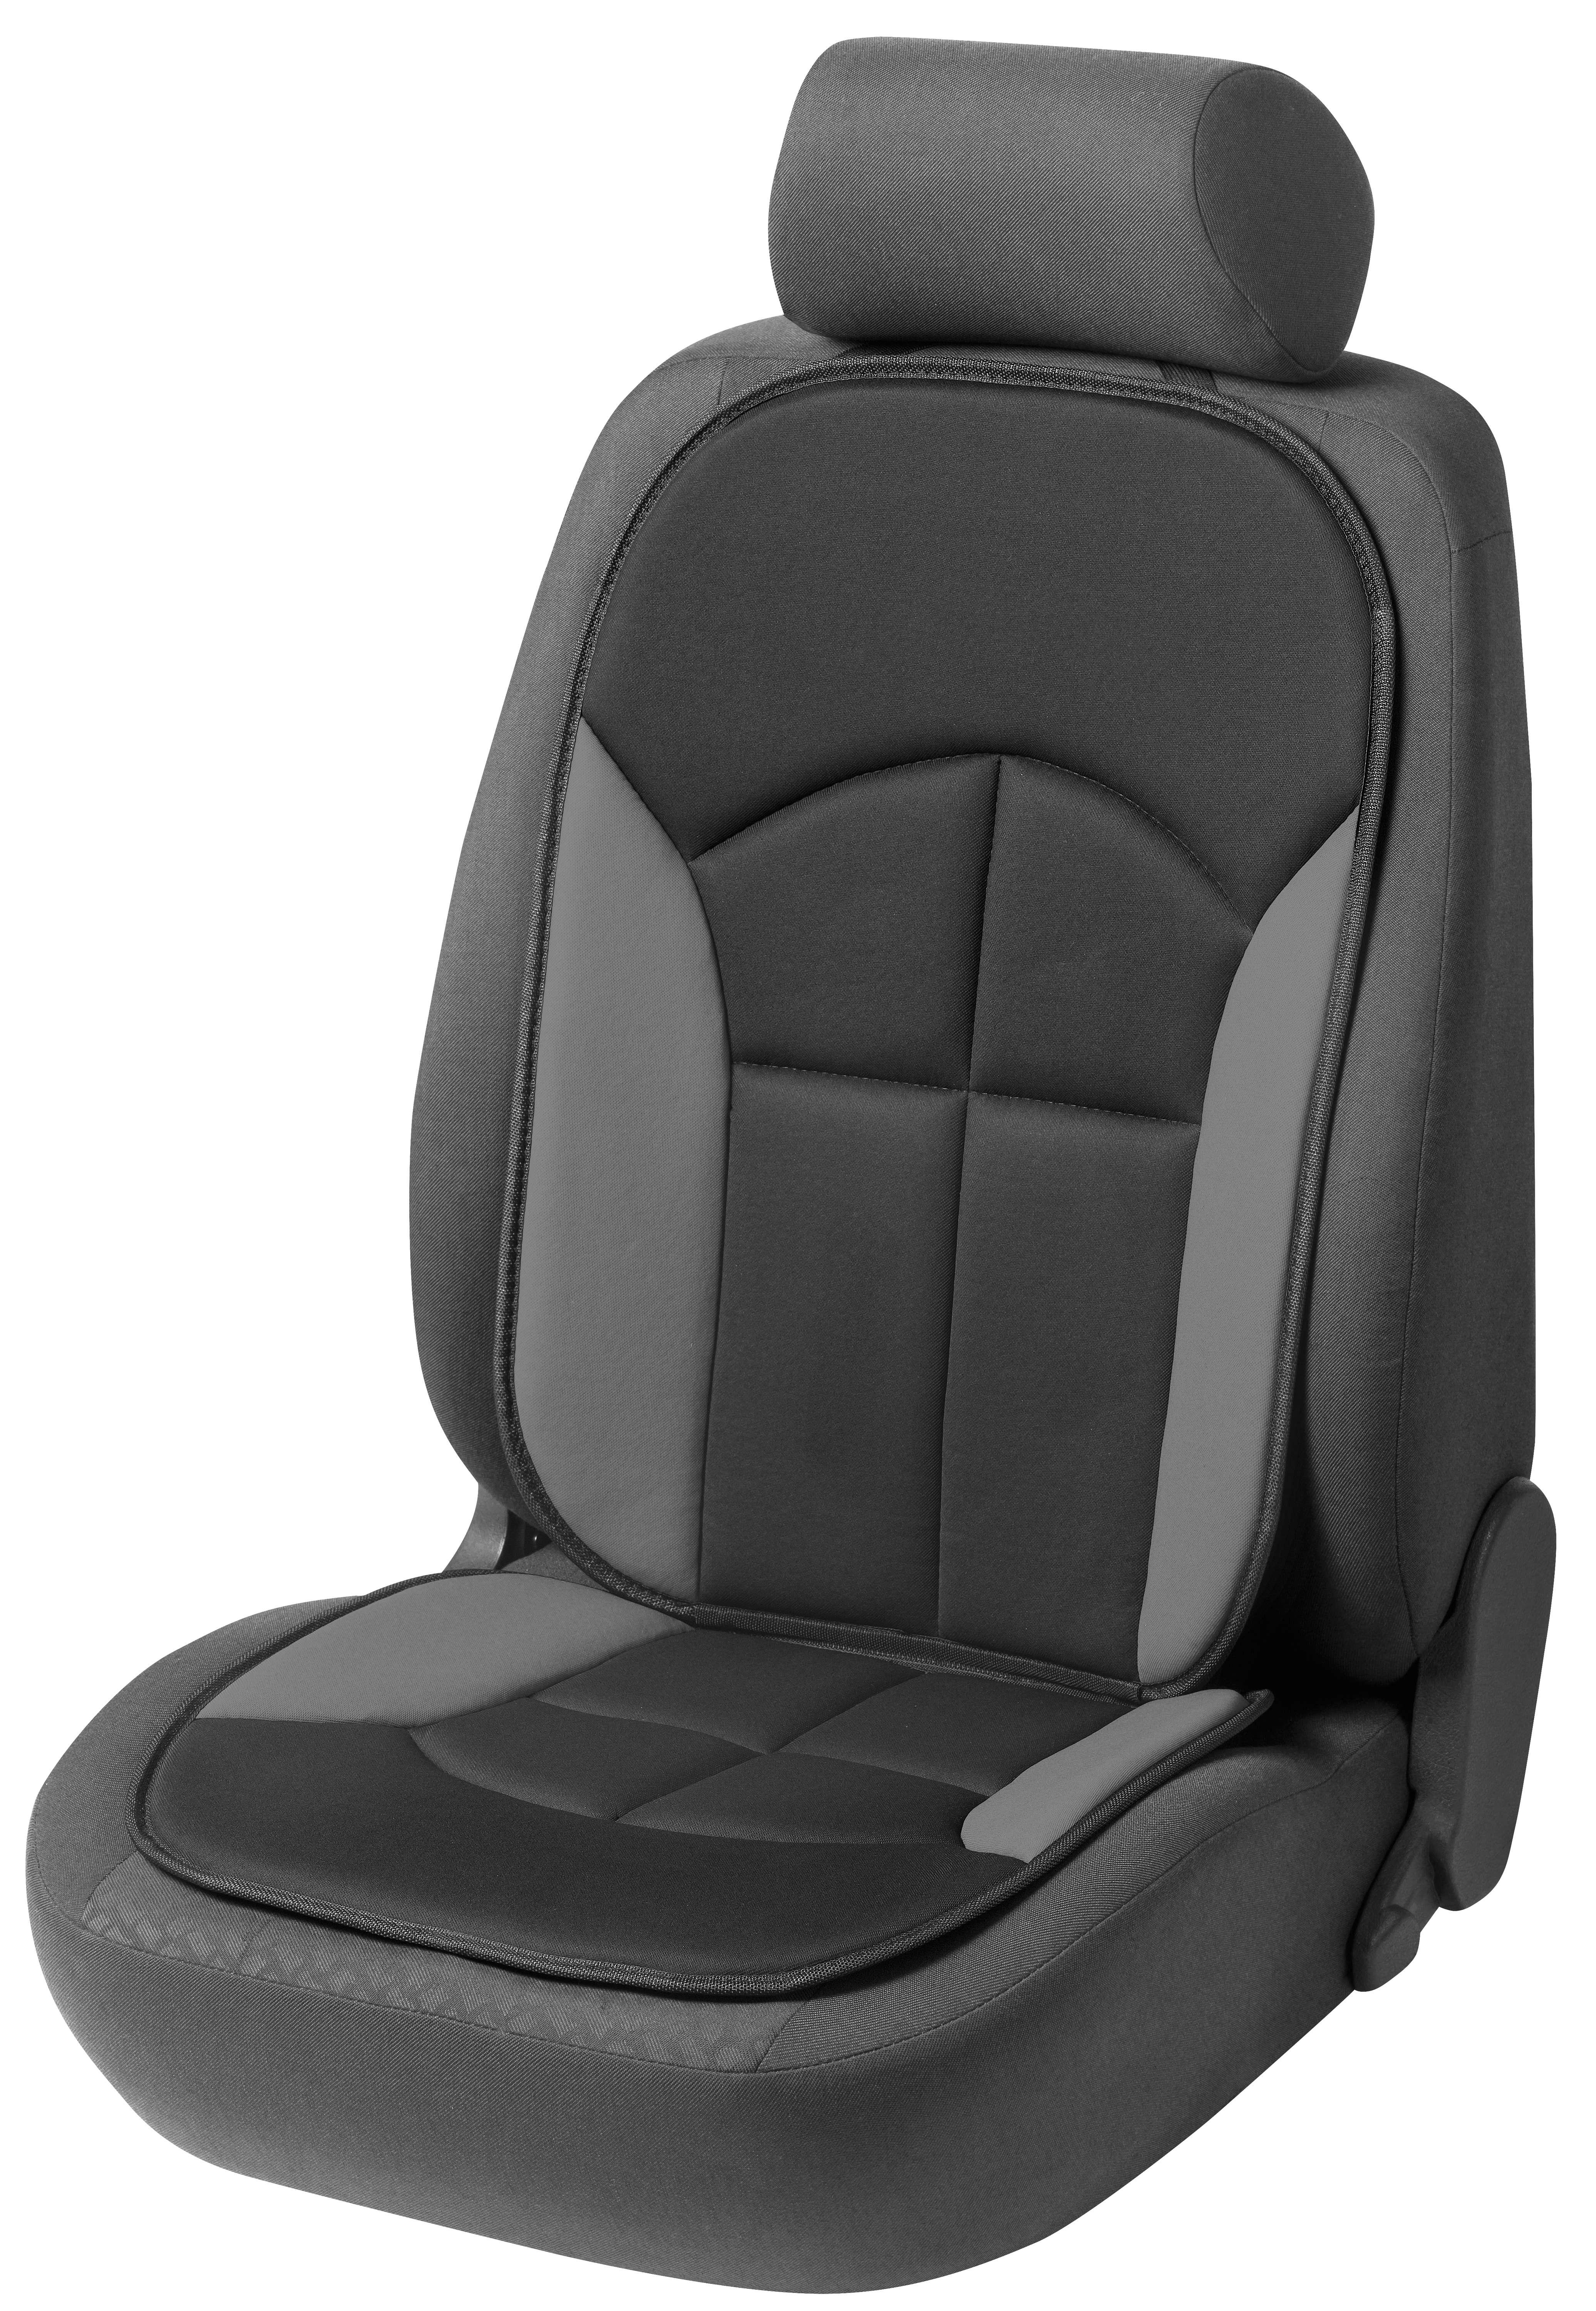 WALSER 13447 Protector asiento coche